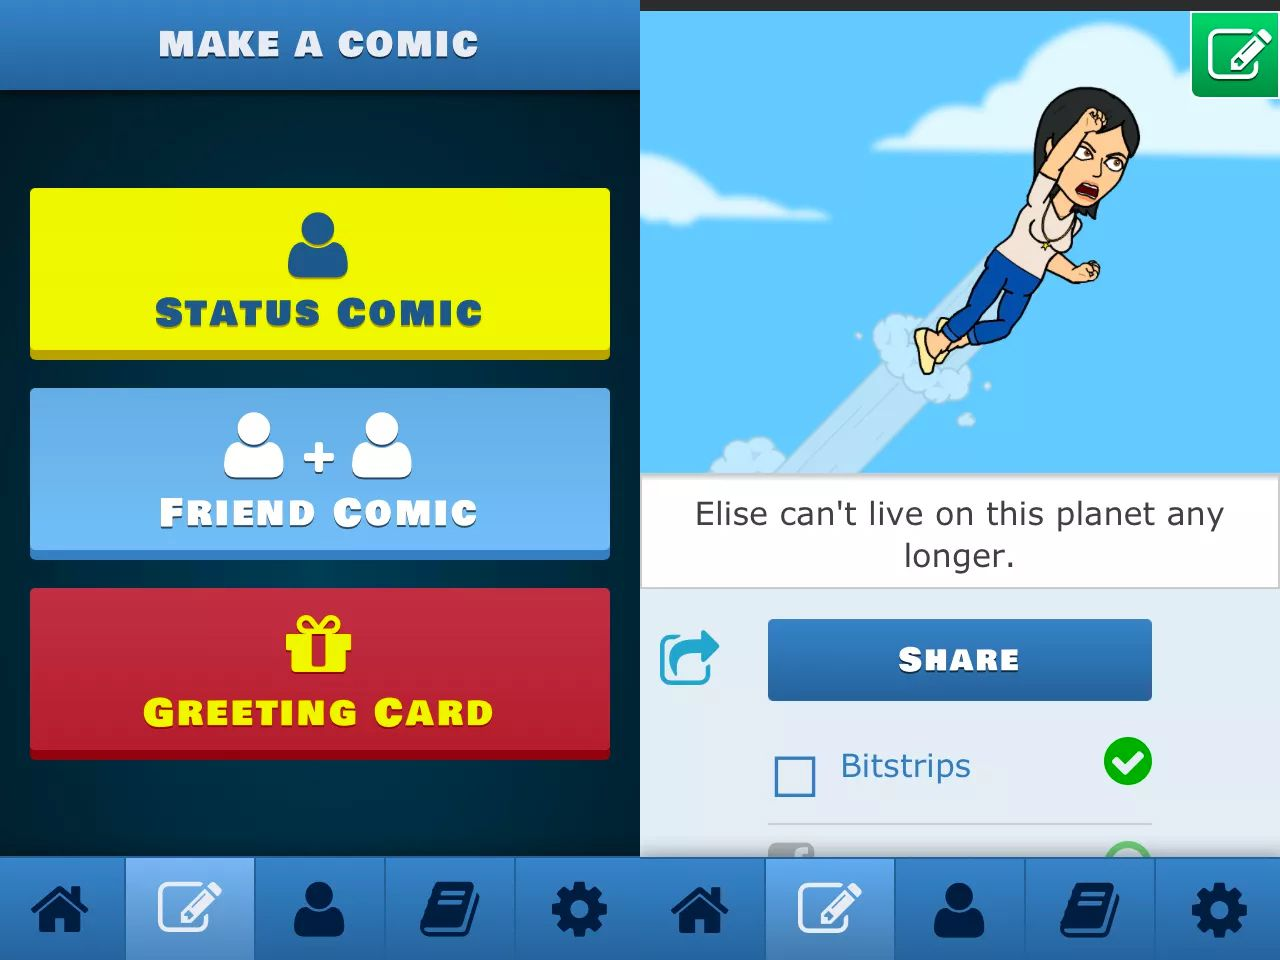 What Happened to Bitstrips?